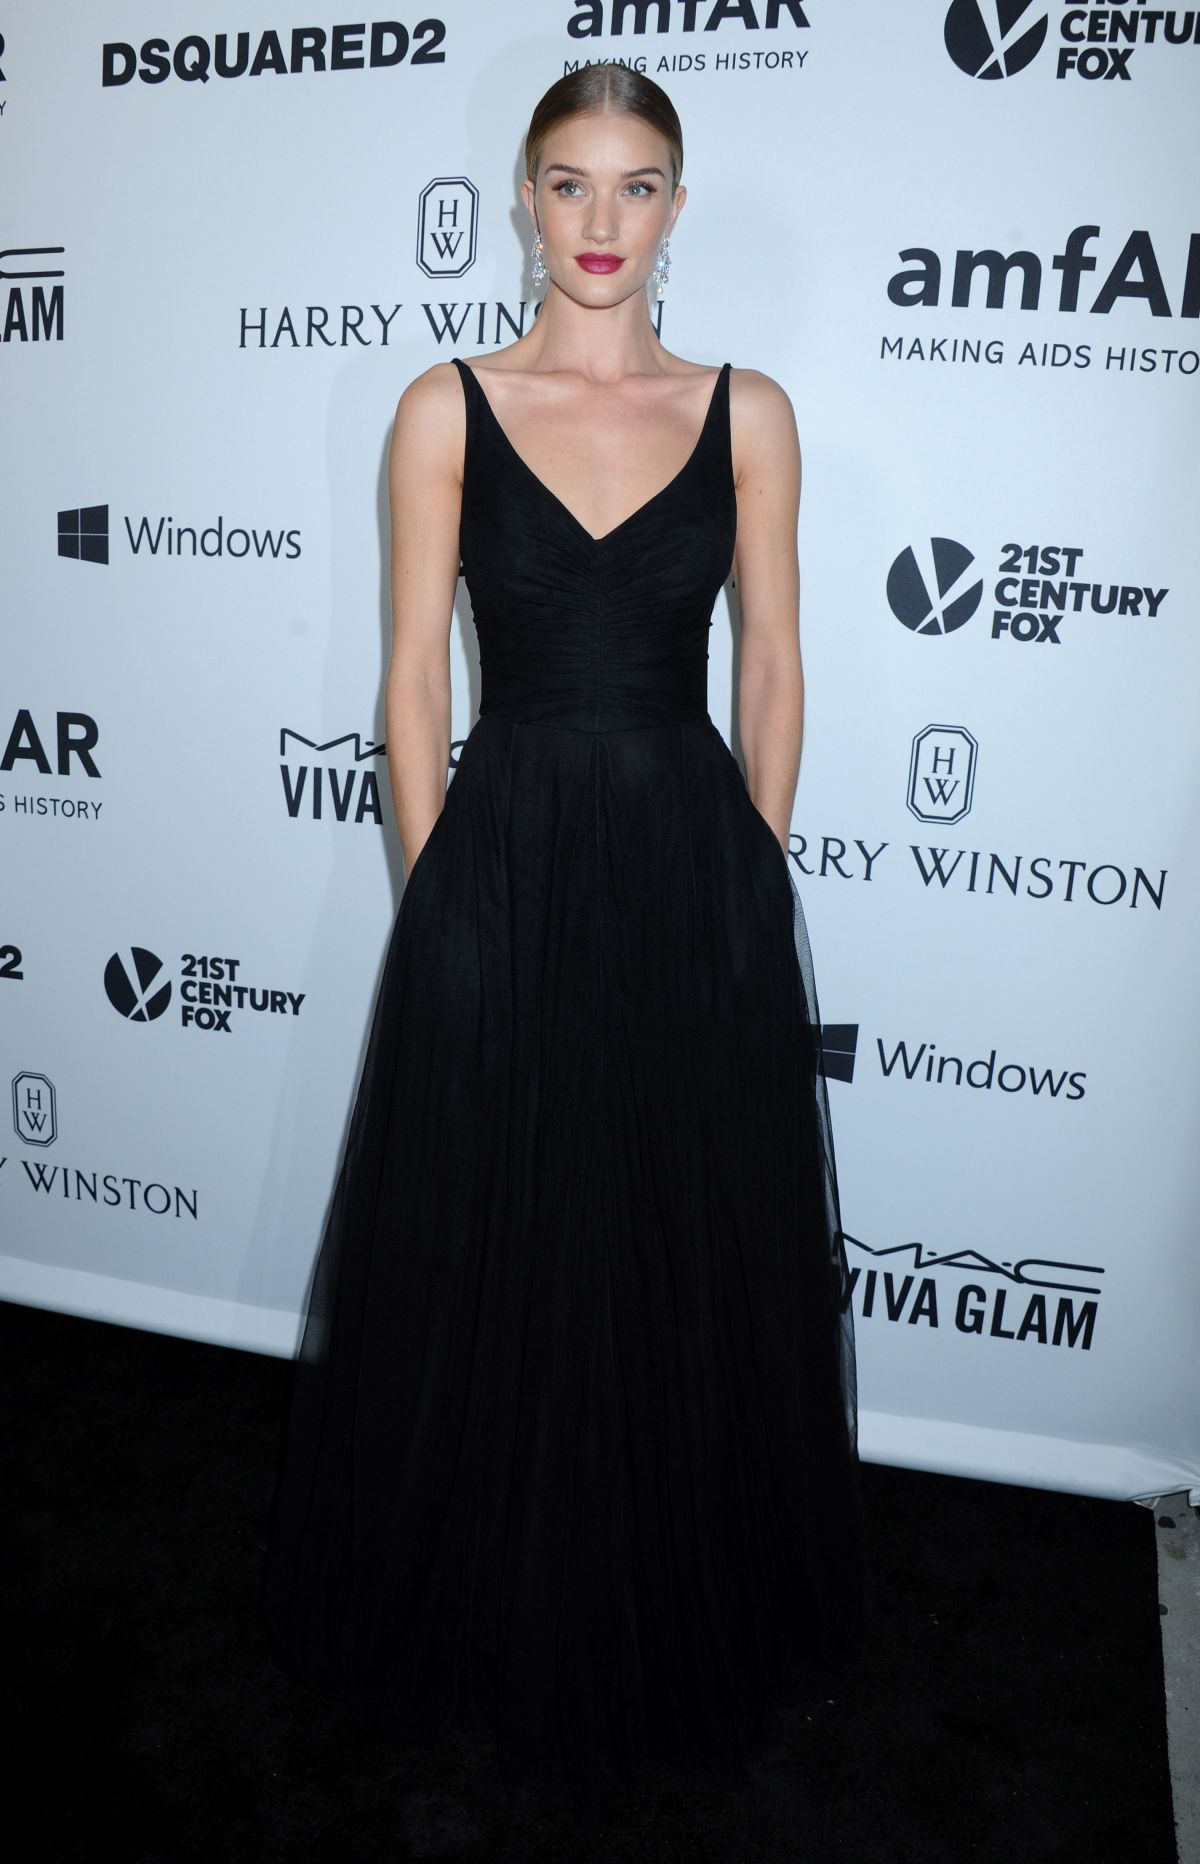 ROSIE HUNTINGTON-WHITELEY at amfAR